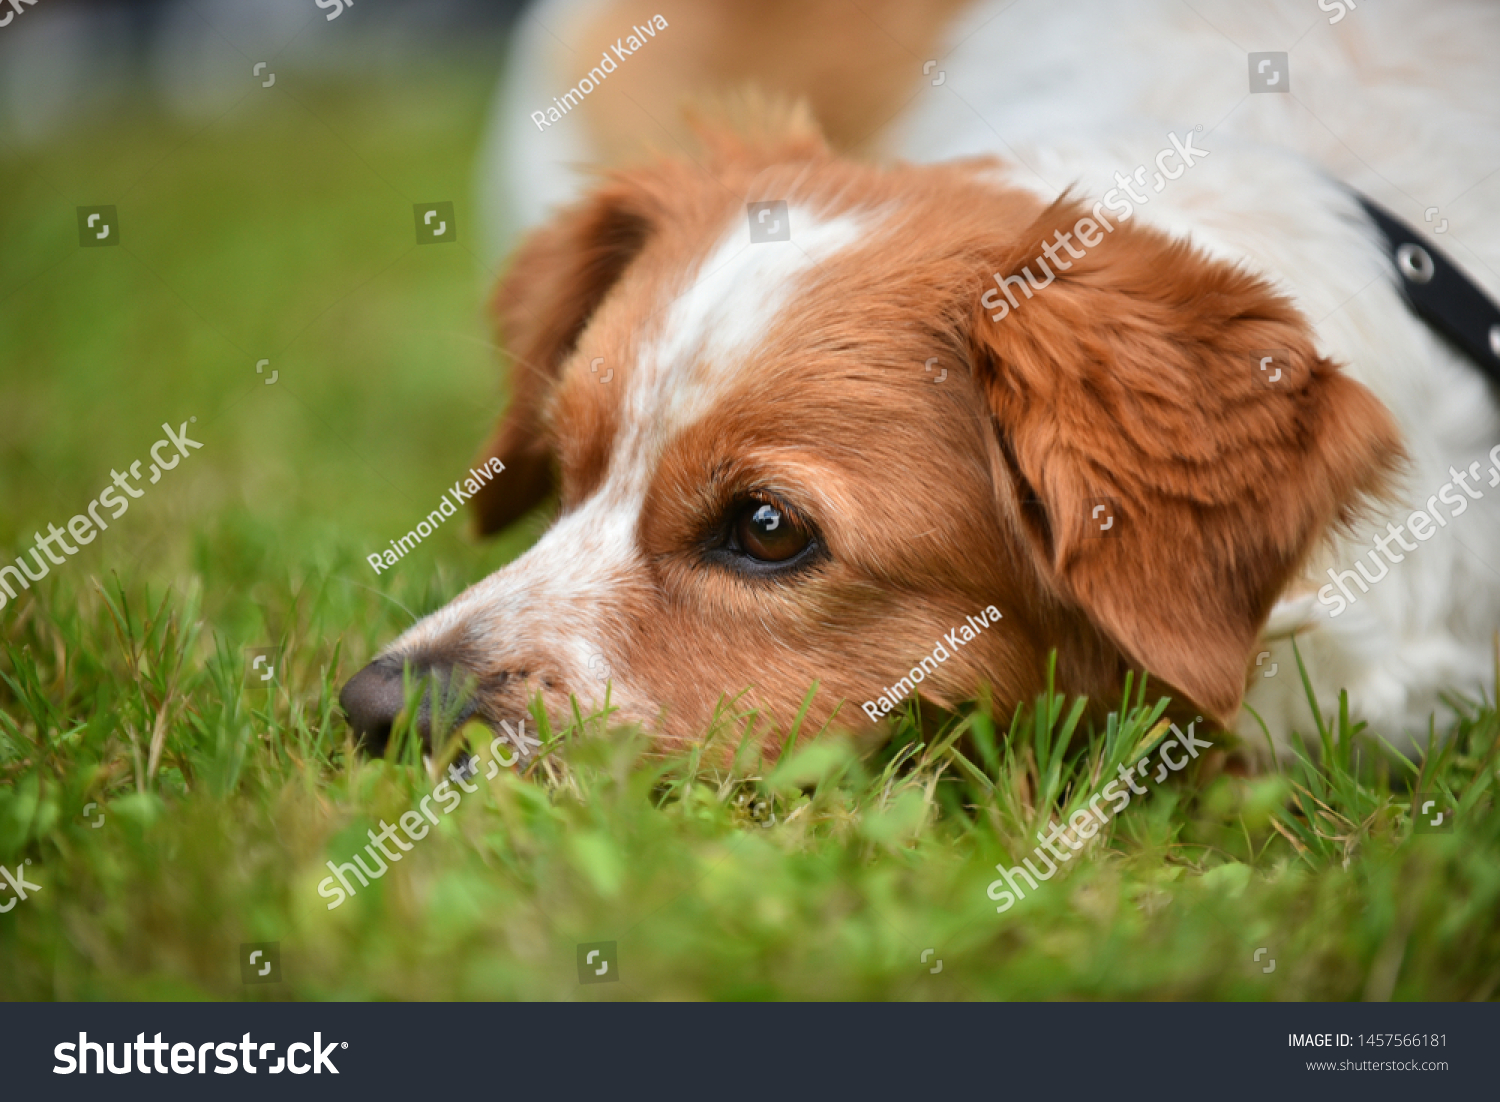 stock-photo-the-dog-is-lying-on-the-gras